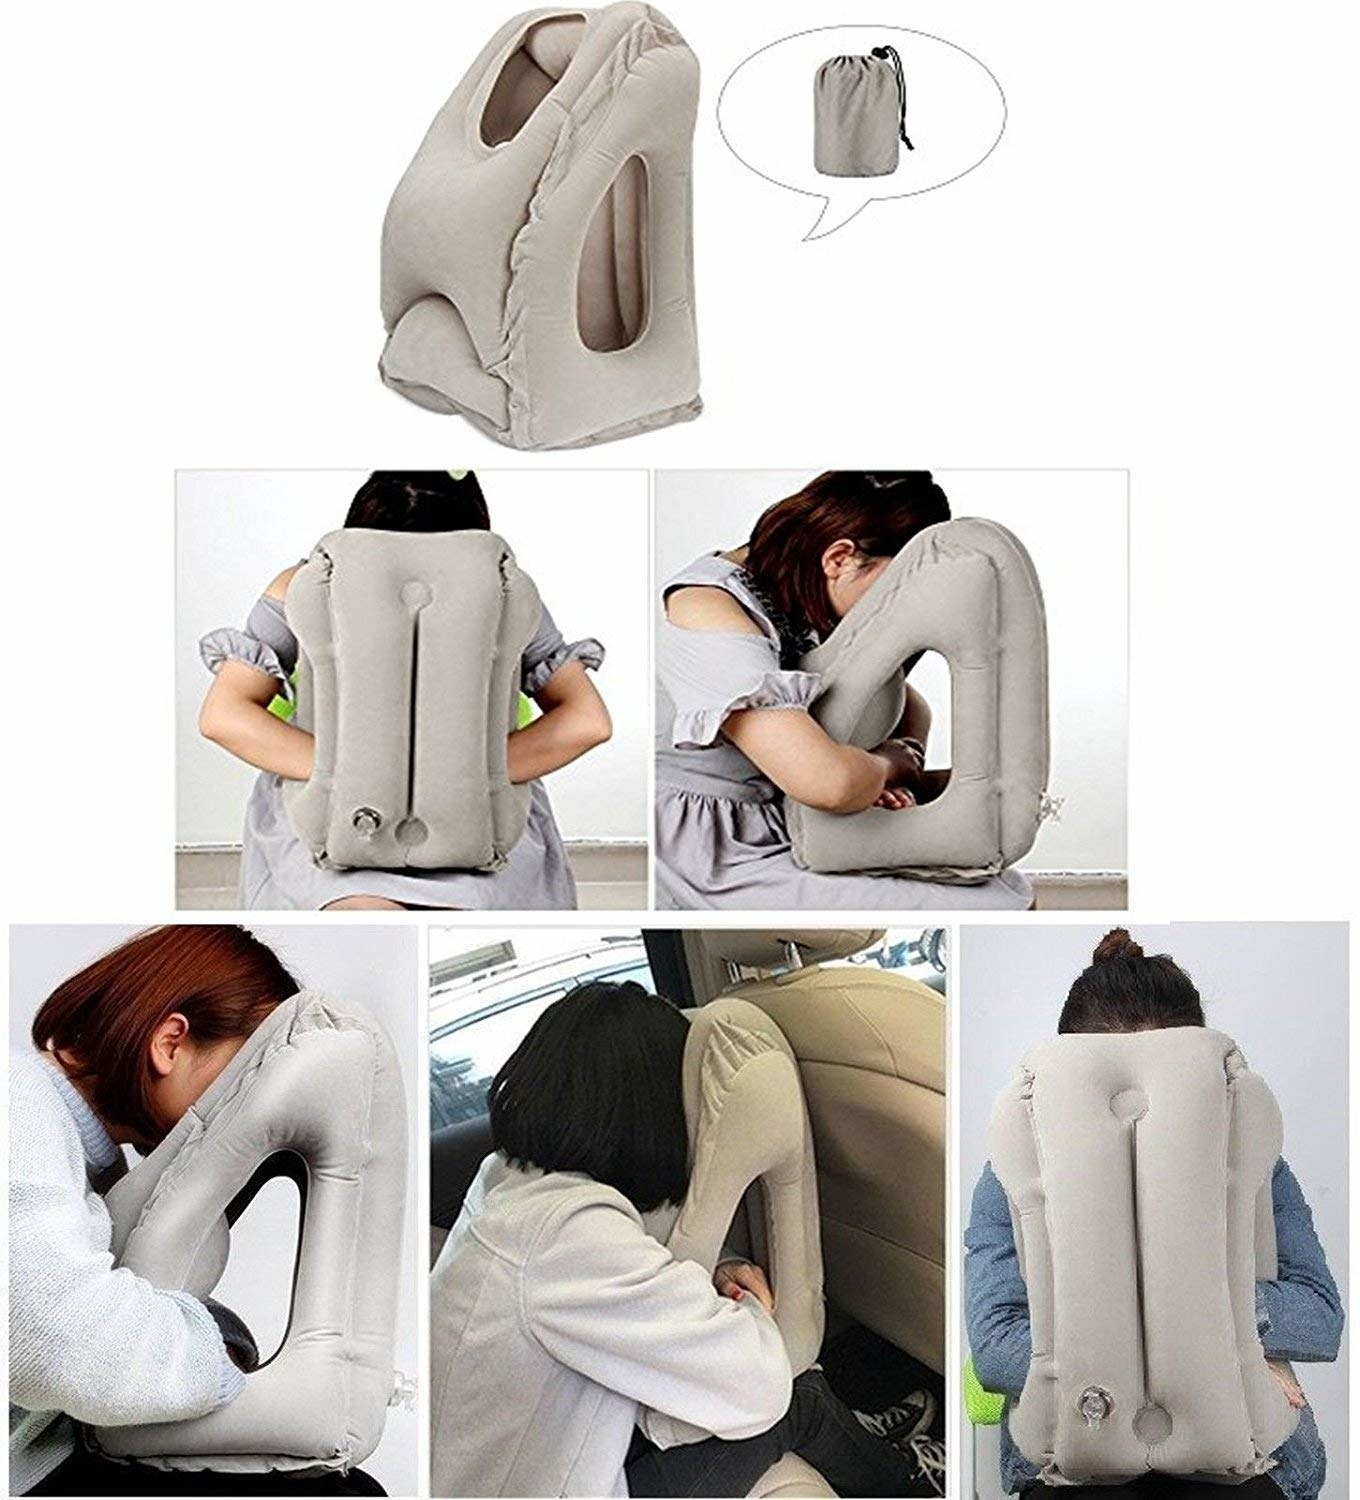 A person sleeping with their head on the neck rest, in various situations.